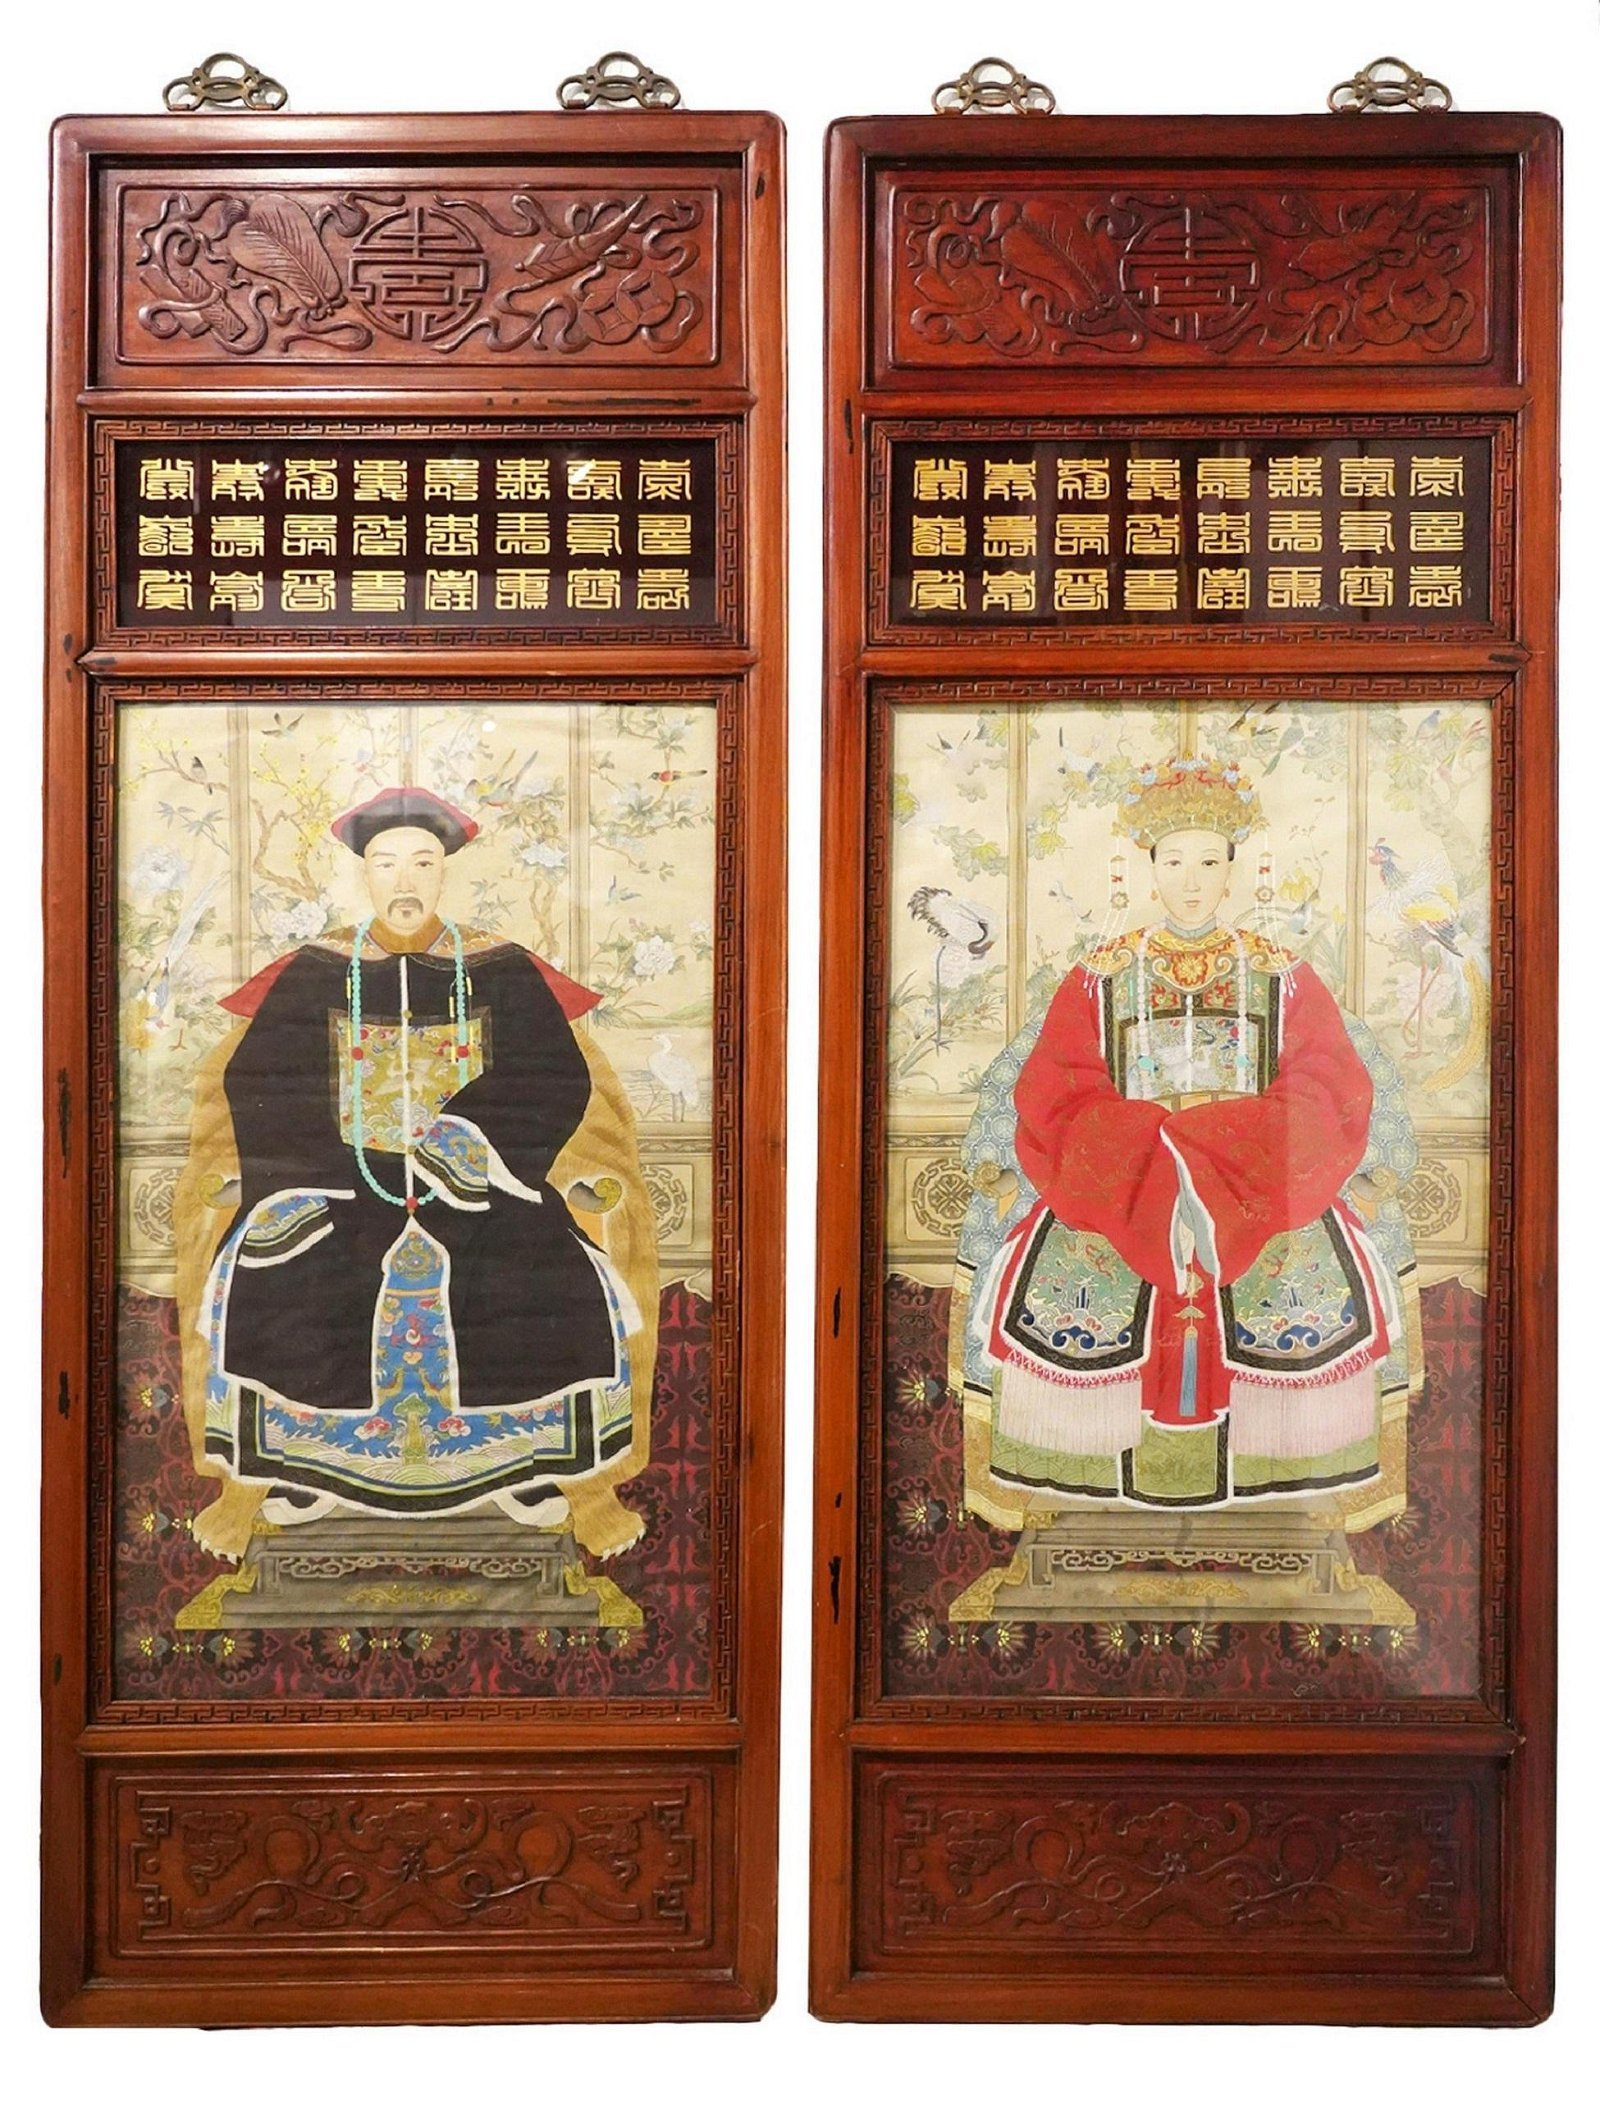 Pair of Large Chinese Watercolor Framed Ancestrals